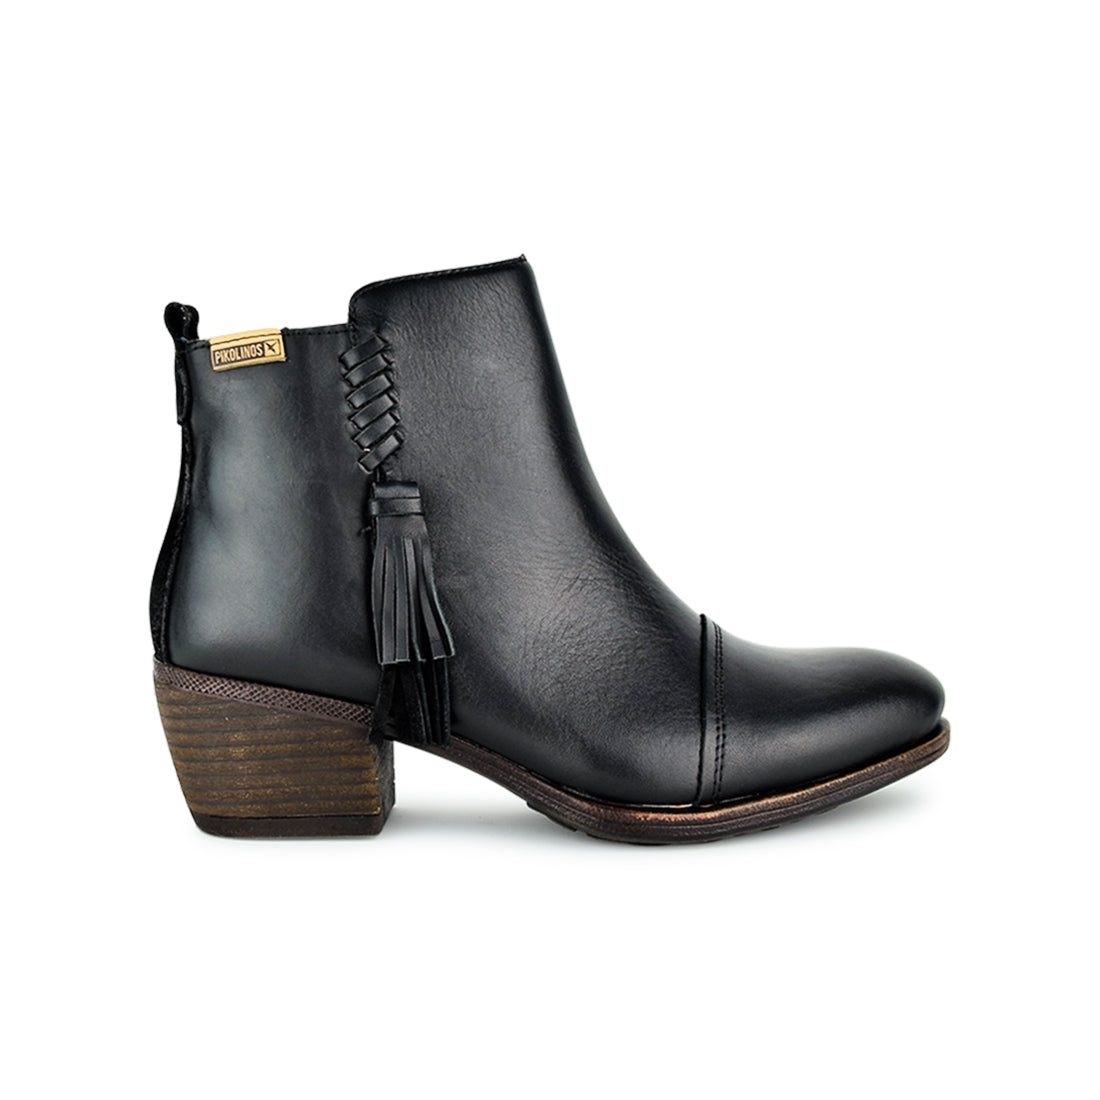 WOMAC - Pikolinos Ankle Boots Black